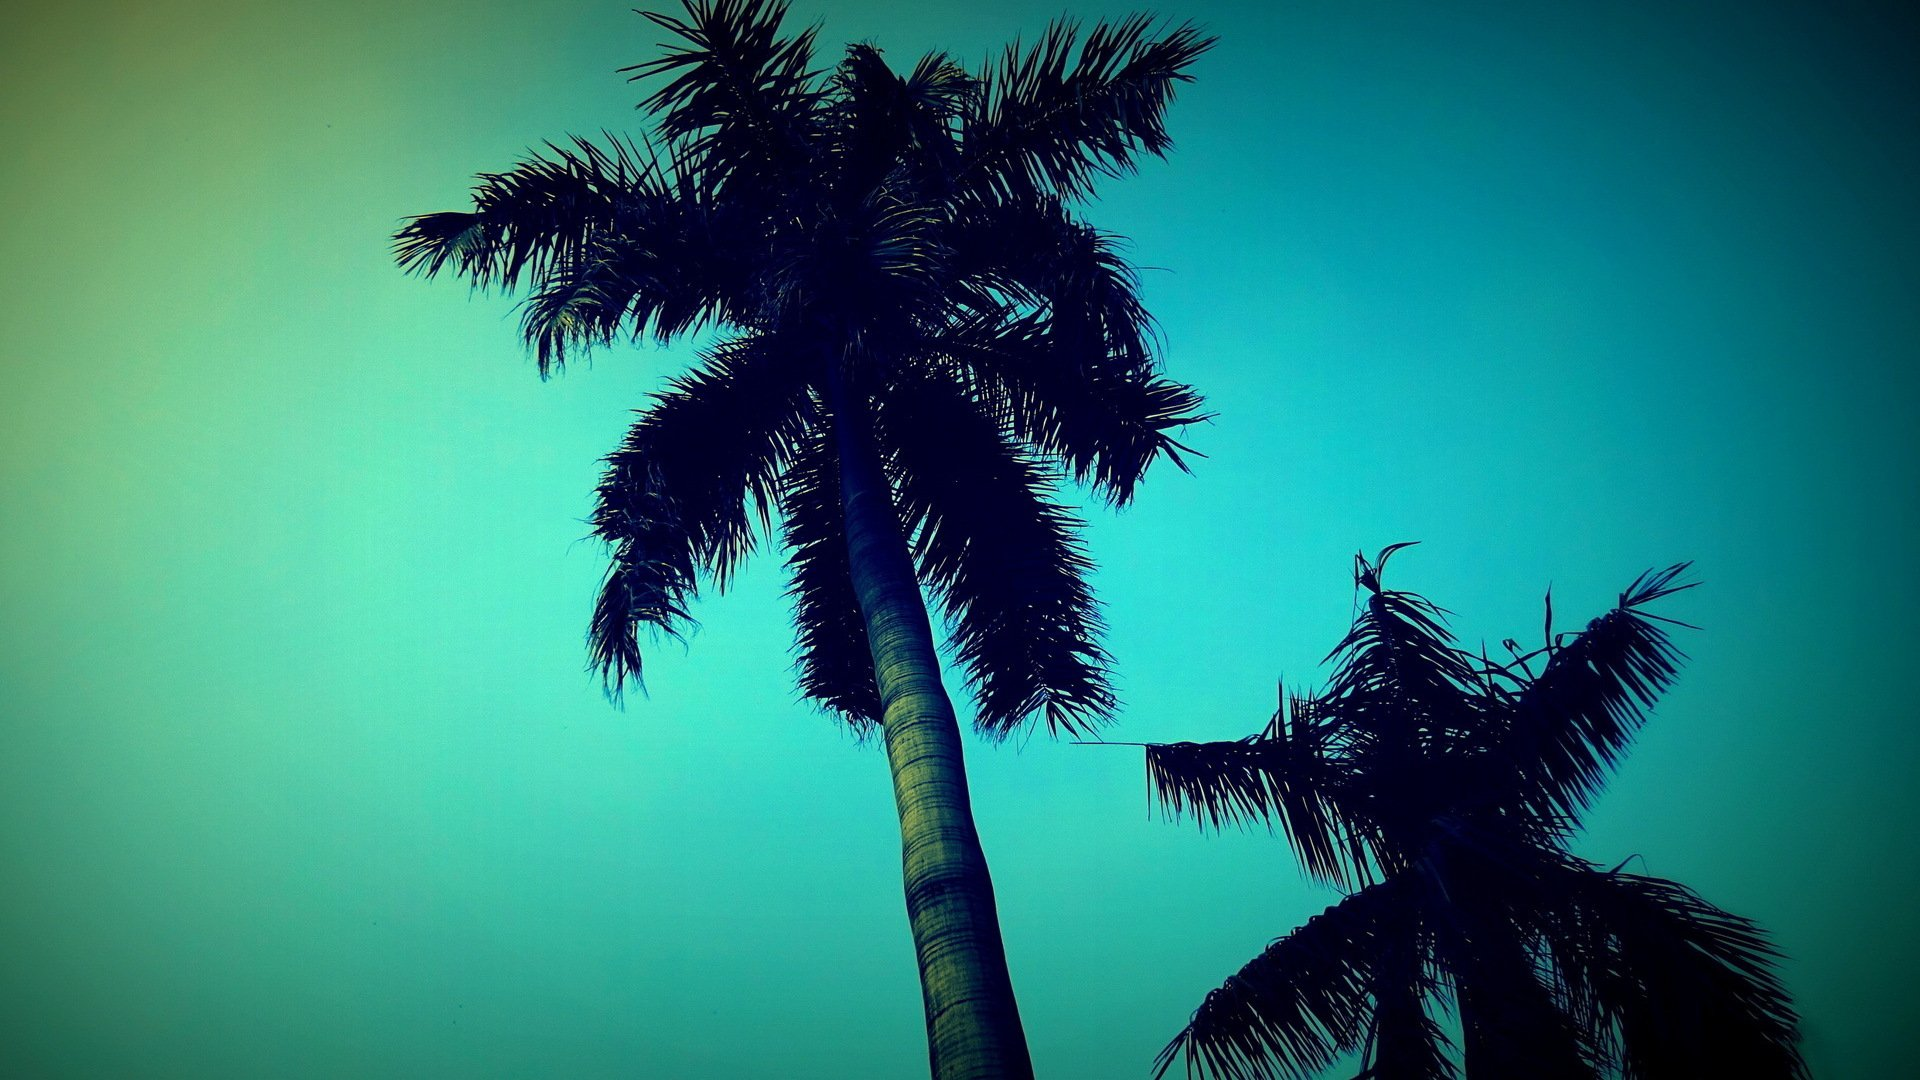 Palm Tree Screensaver Wallpaper and Background